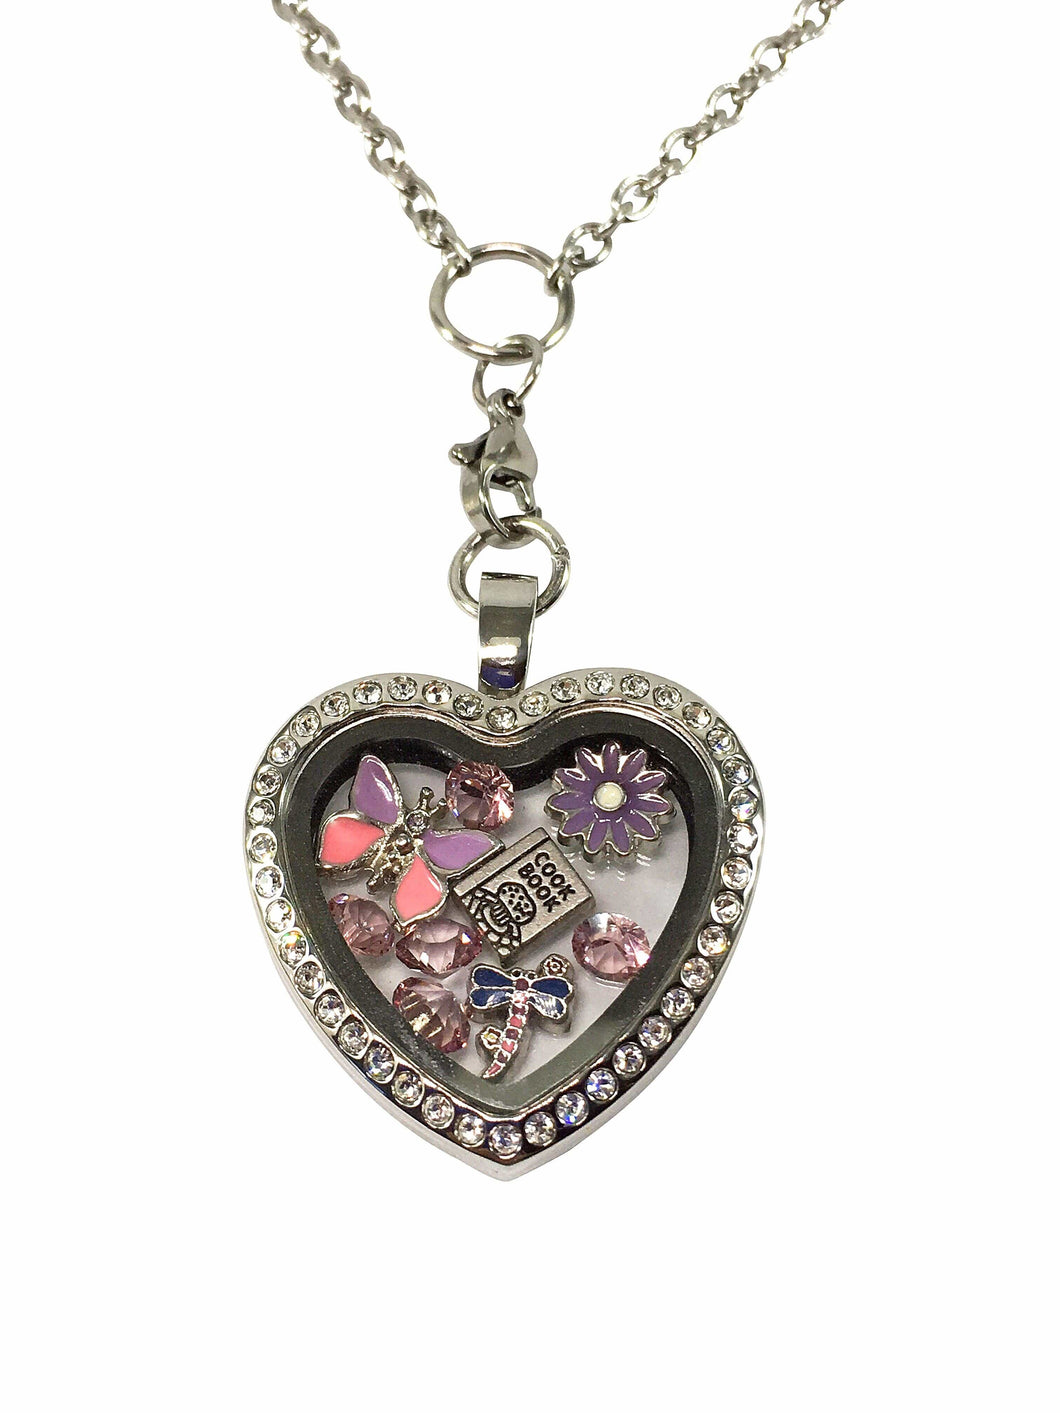 Stainless Steel Heart Locket